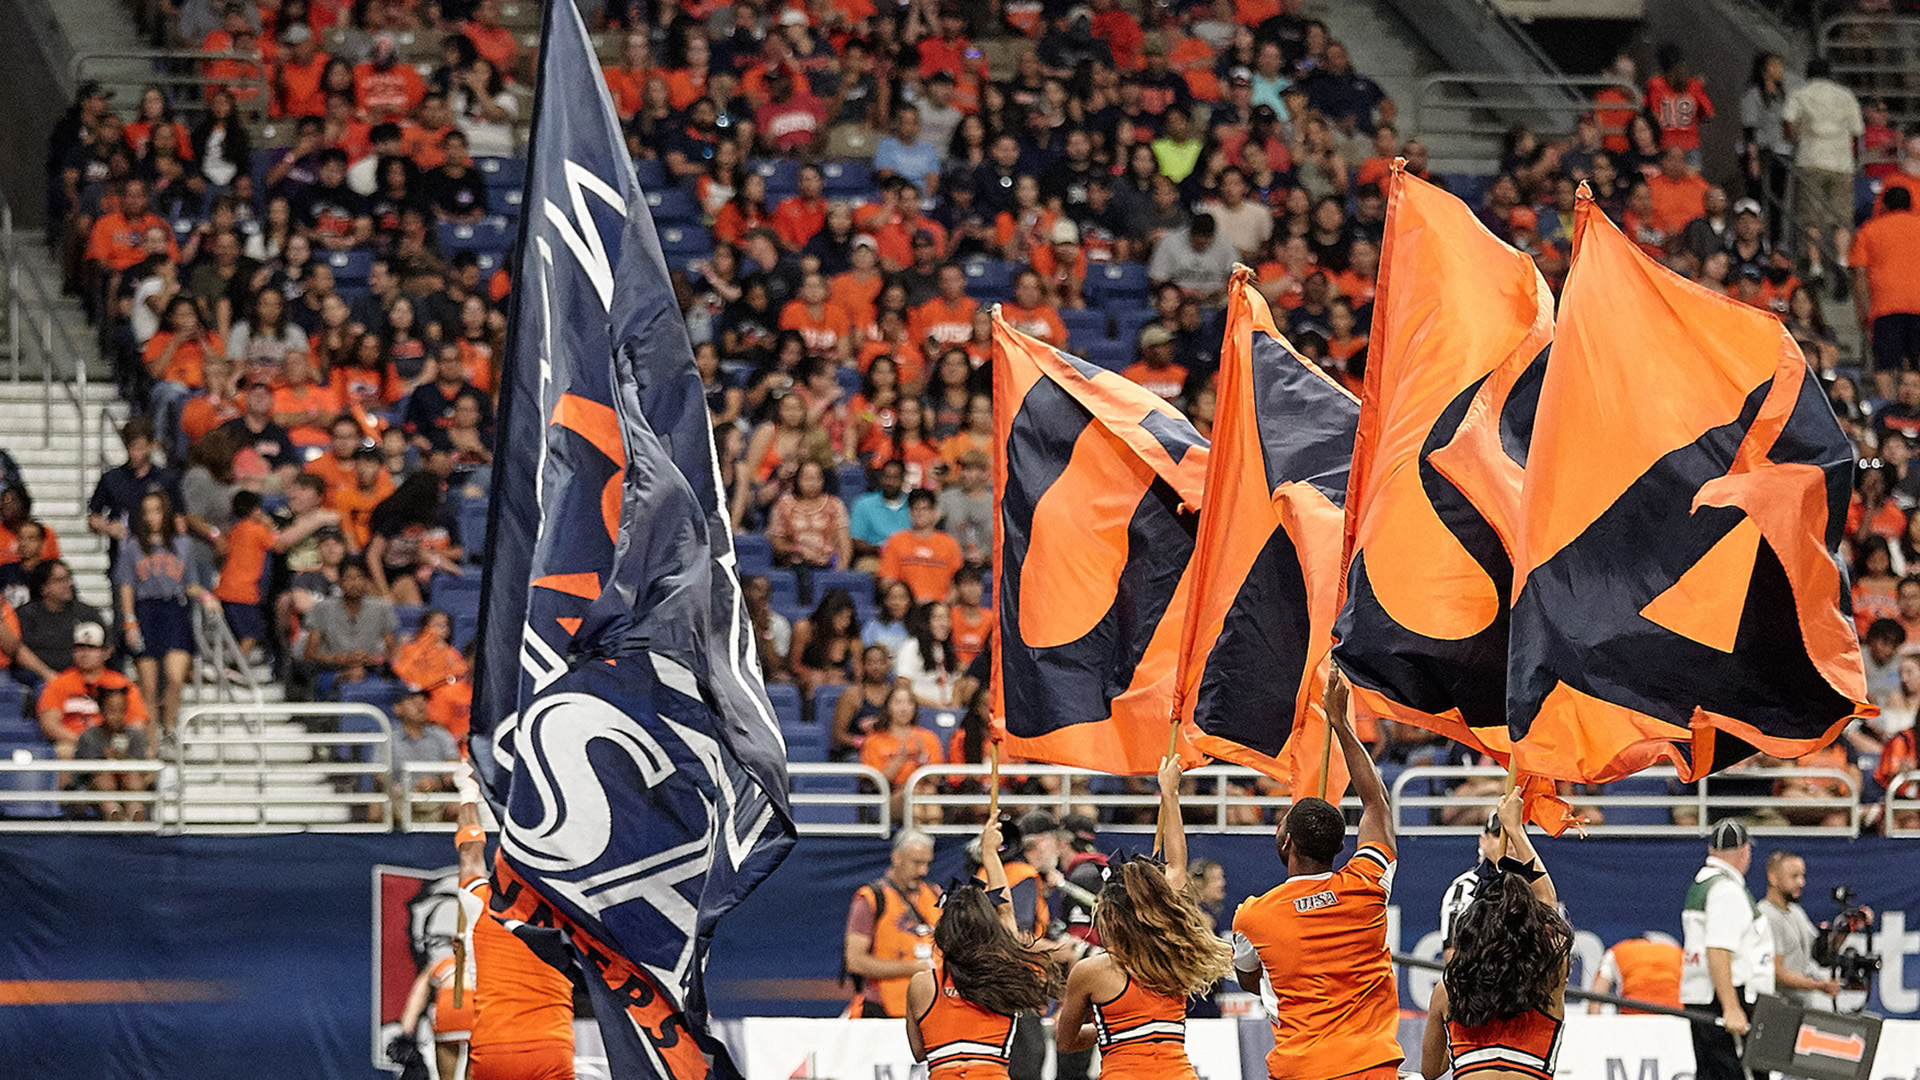 UTSA cheerleaders and flags at a home football game in the Alamodome